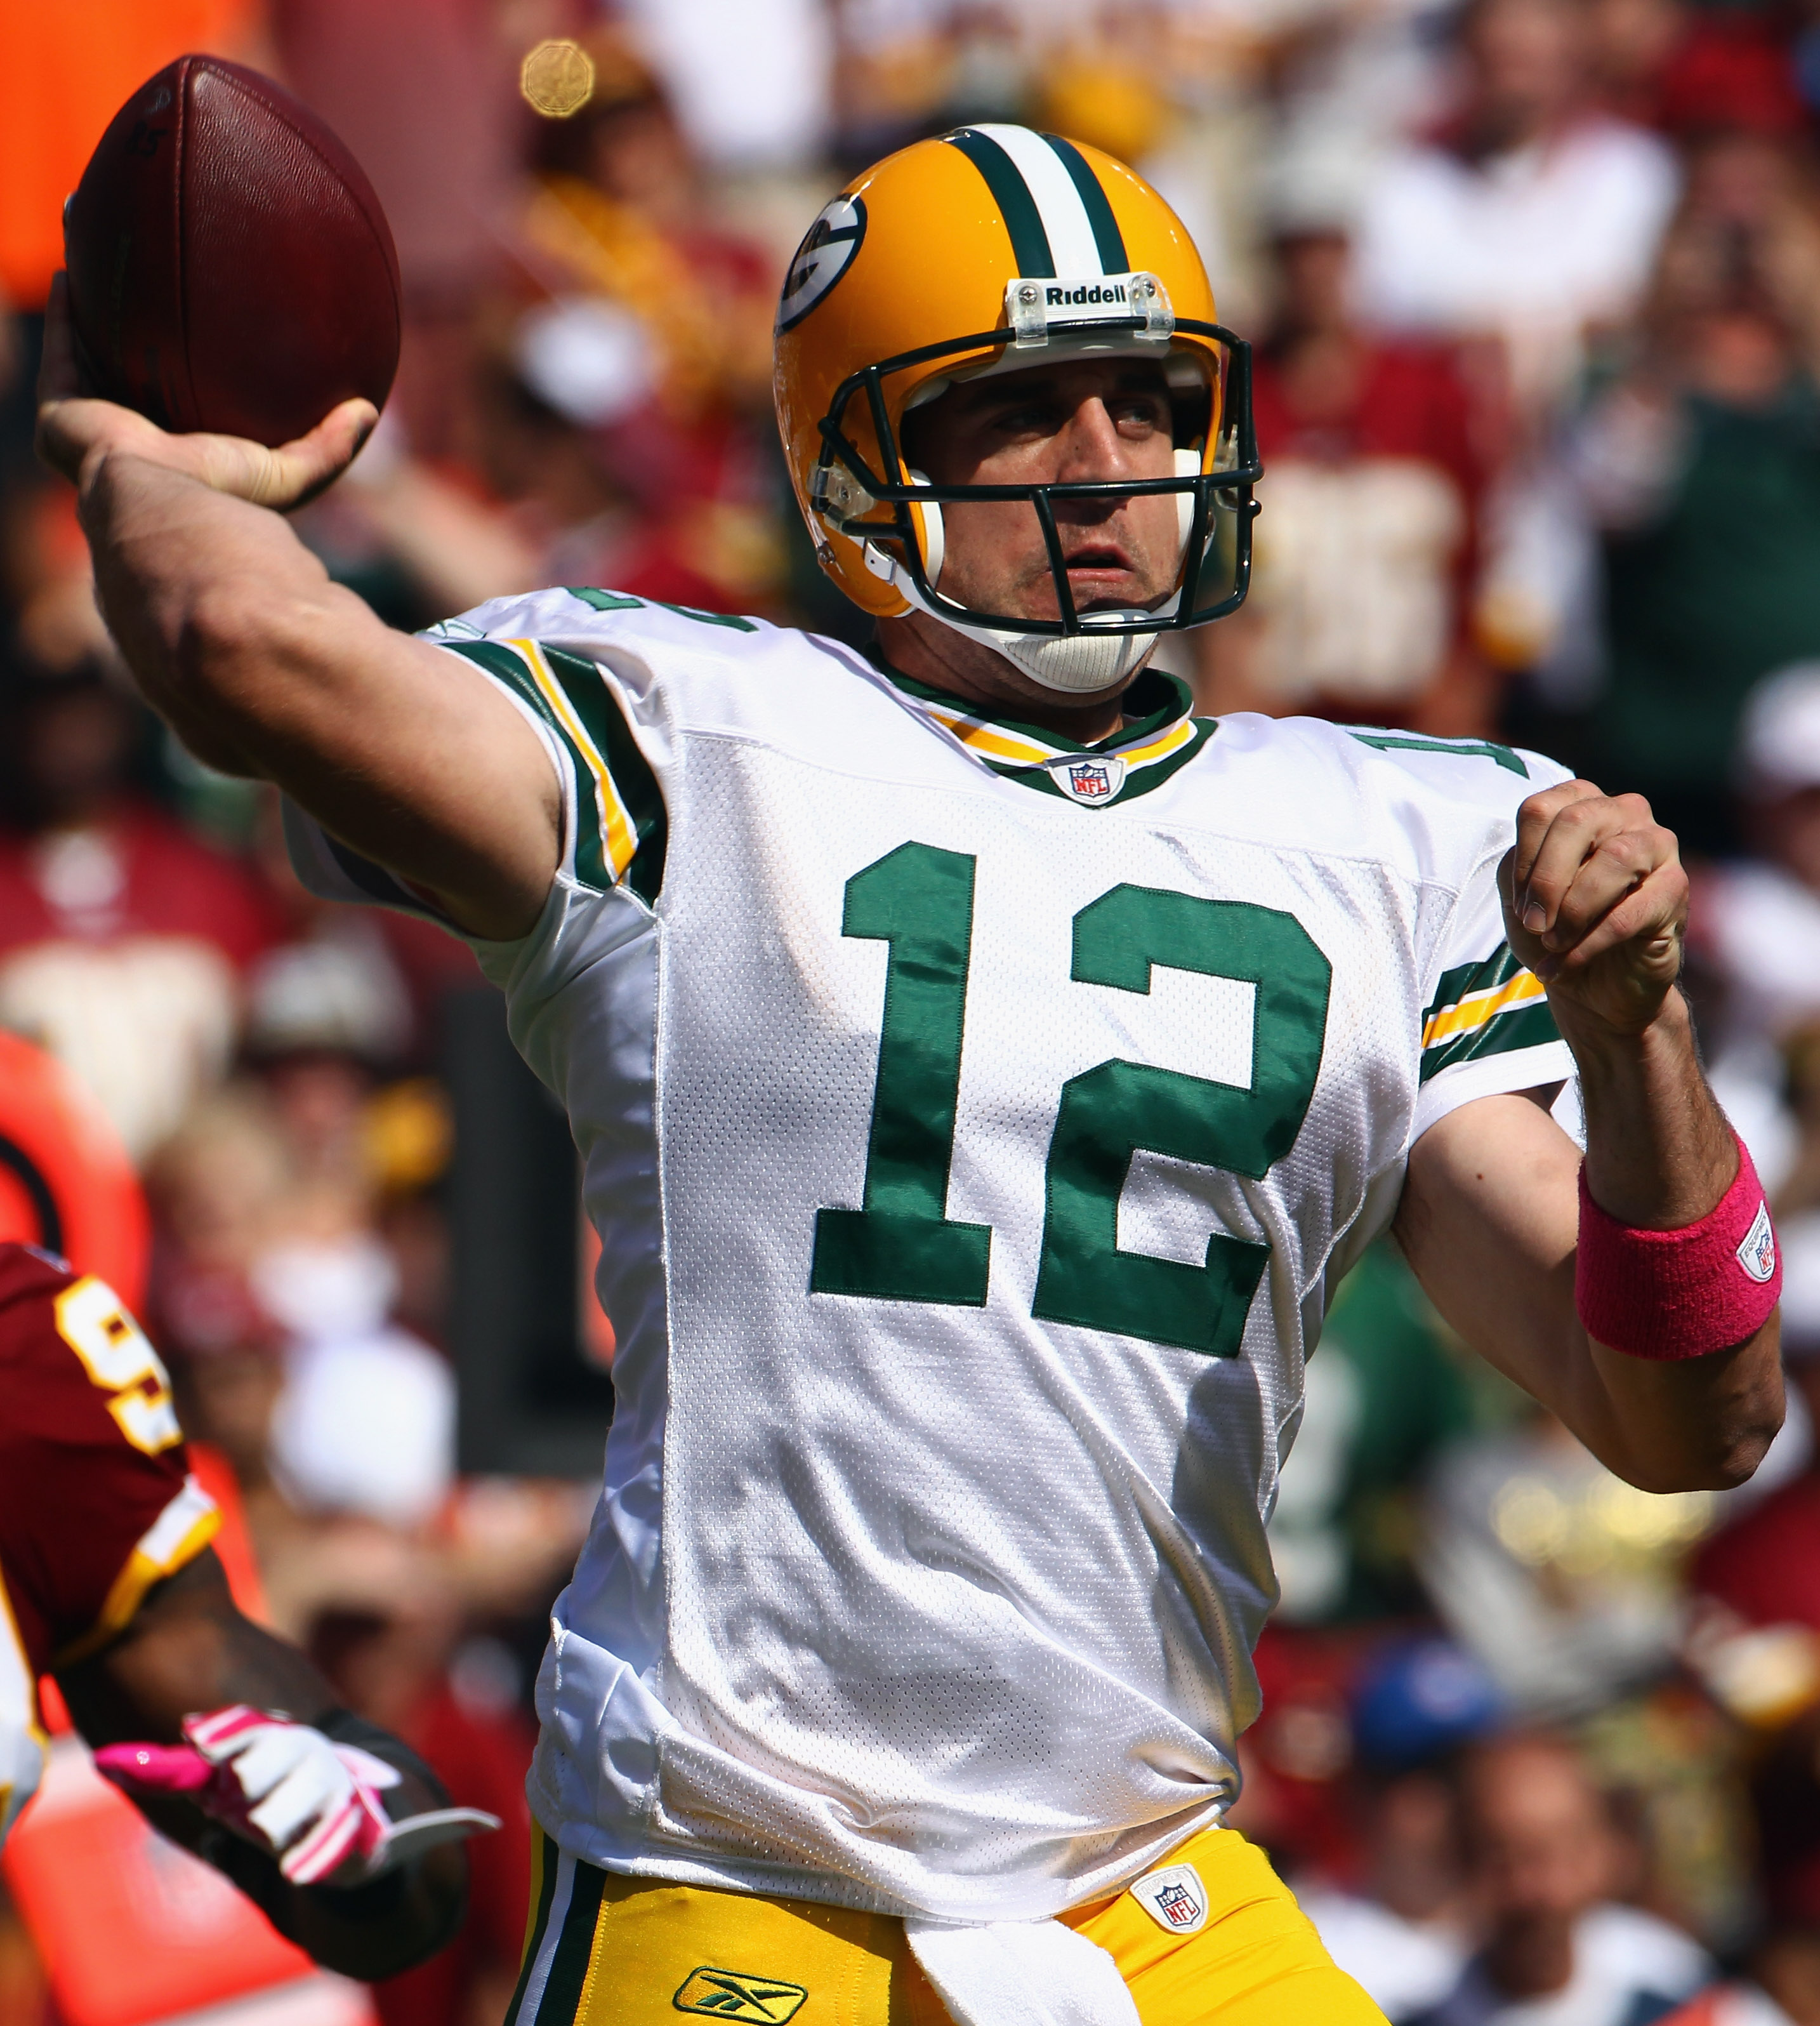 When his career is over, Rodgers may make this uni look better than number 4 did.